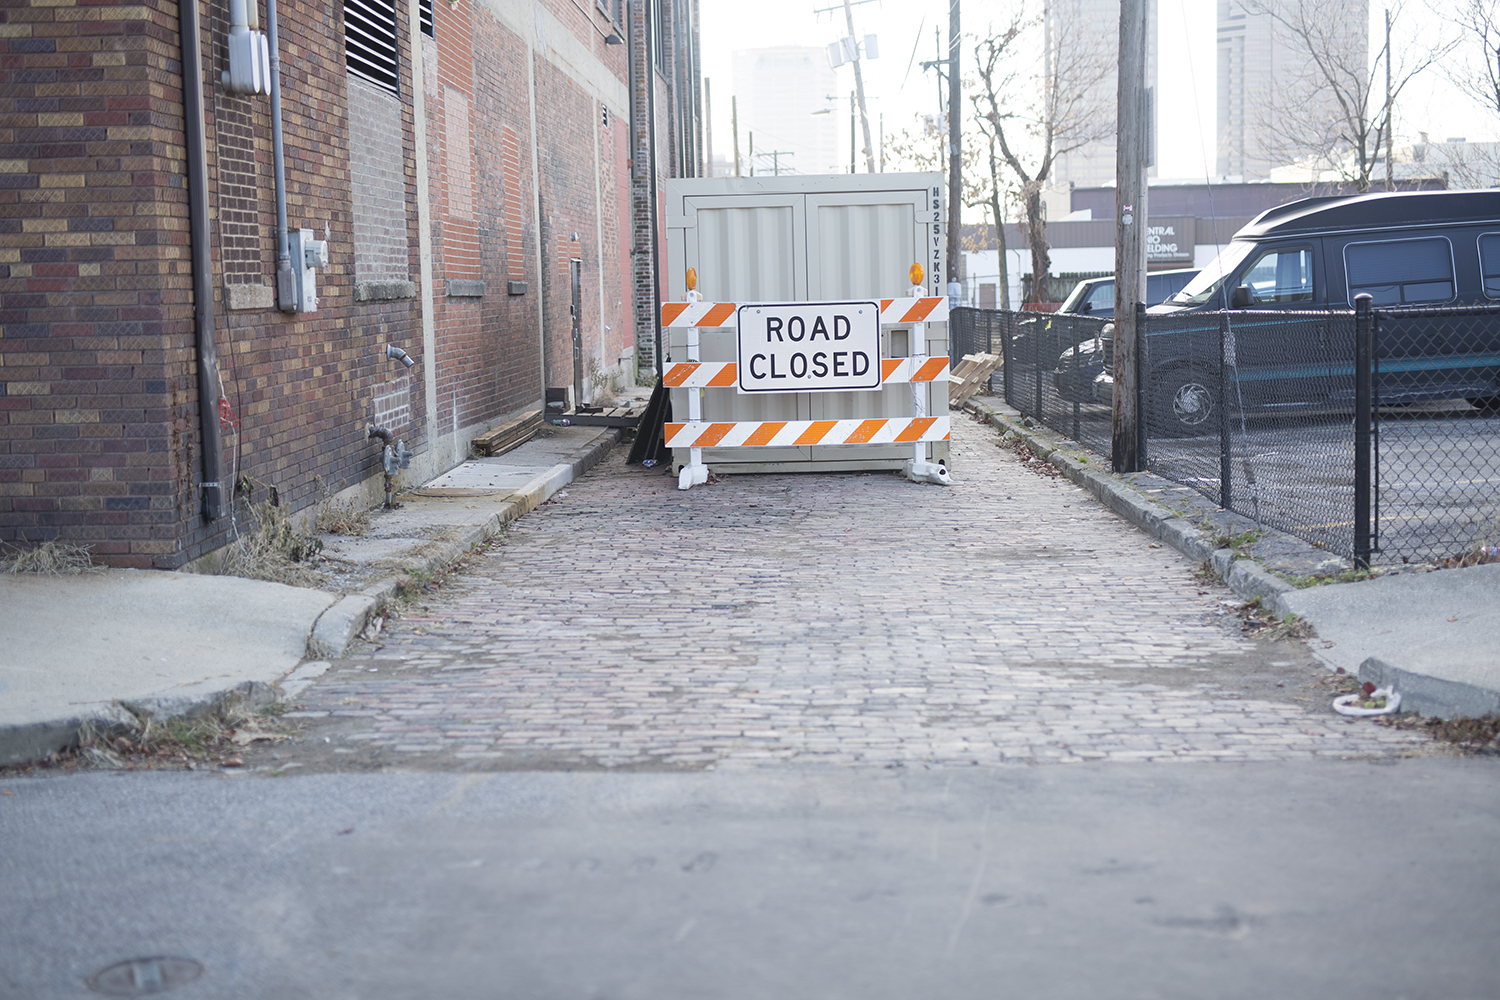 road closed sign in an alley way